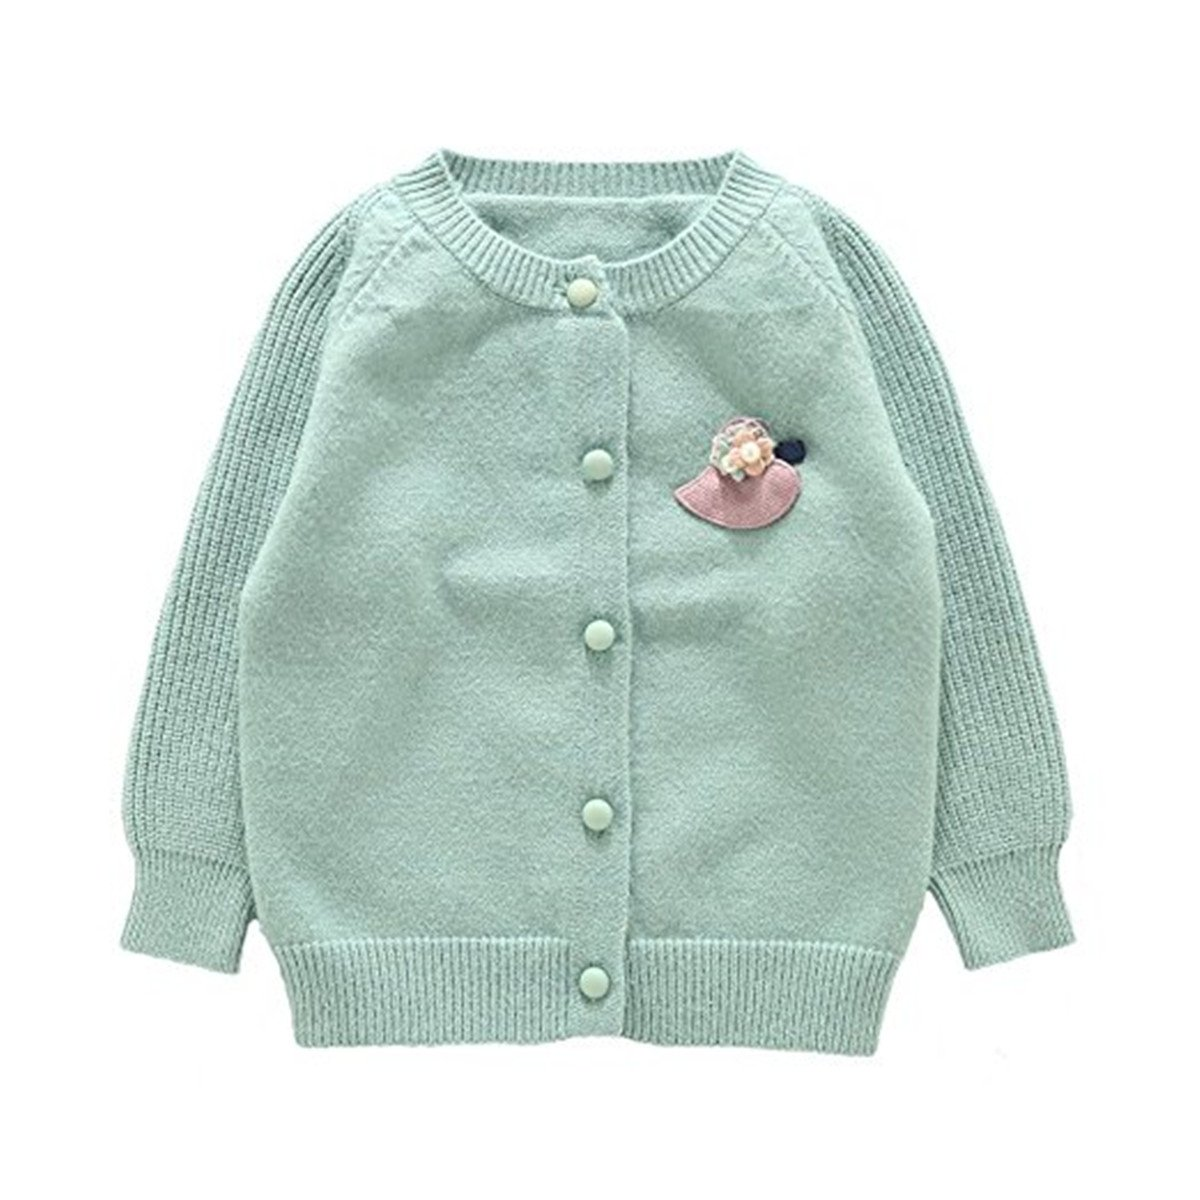 REWANGOING Baby Little Girls Kid sCashmere Cable Knit Front Button Cardigan Sweater RcVBar91